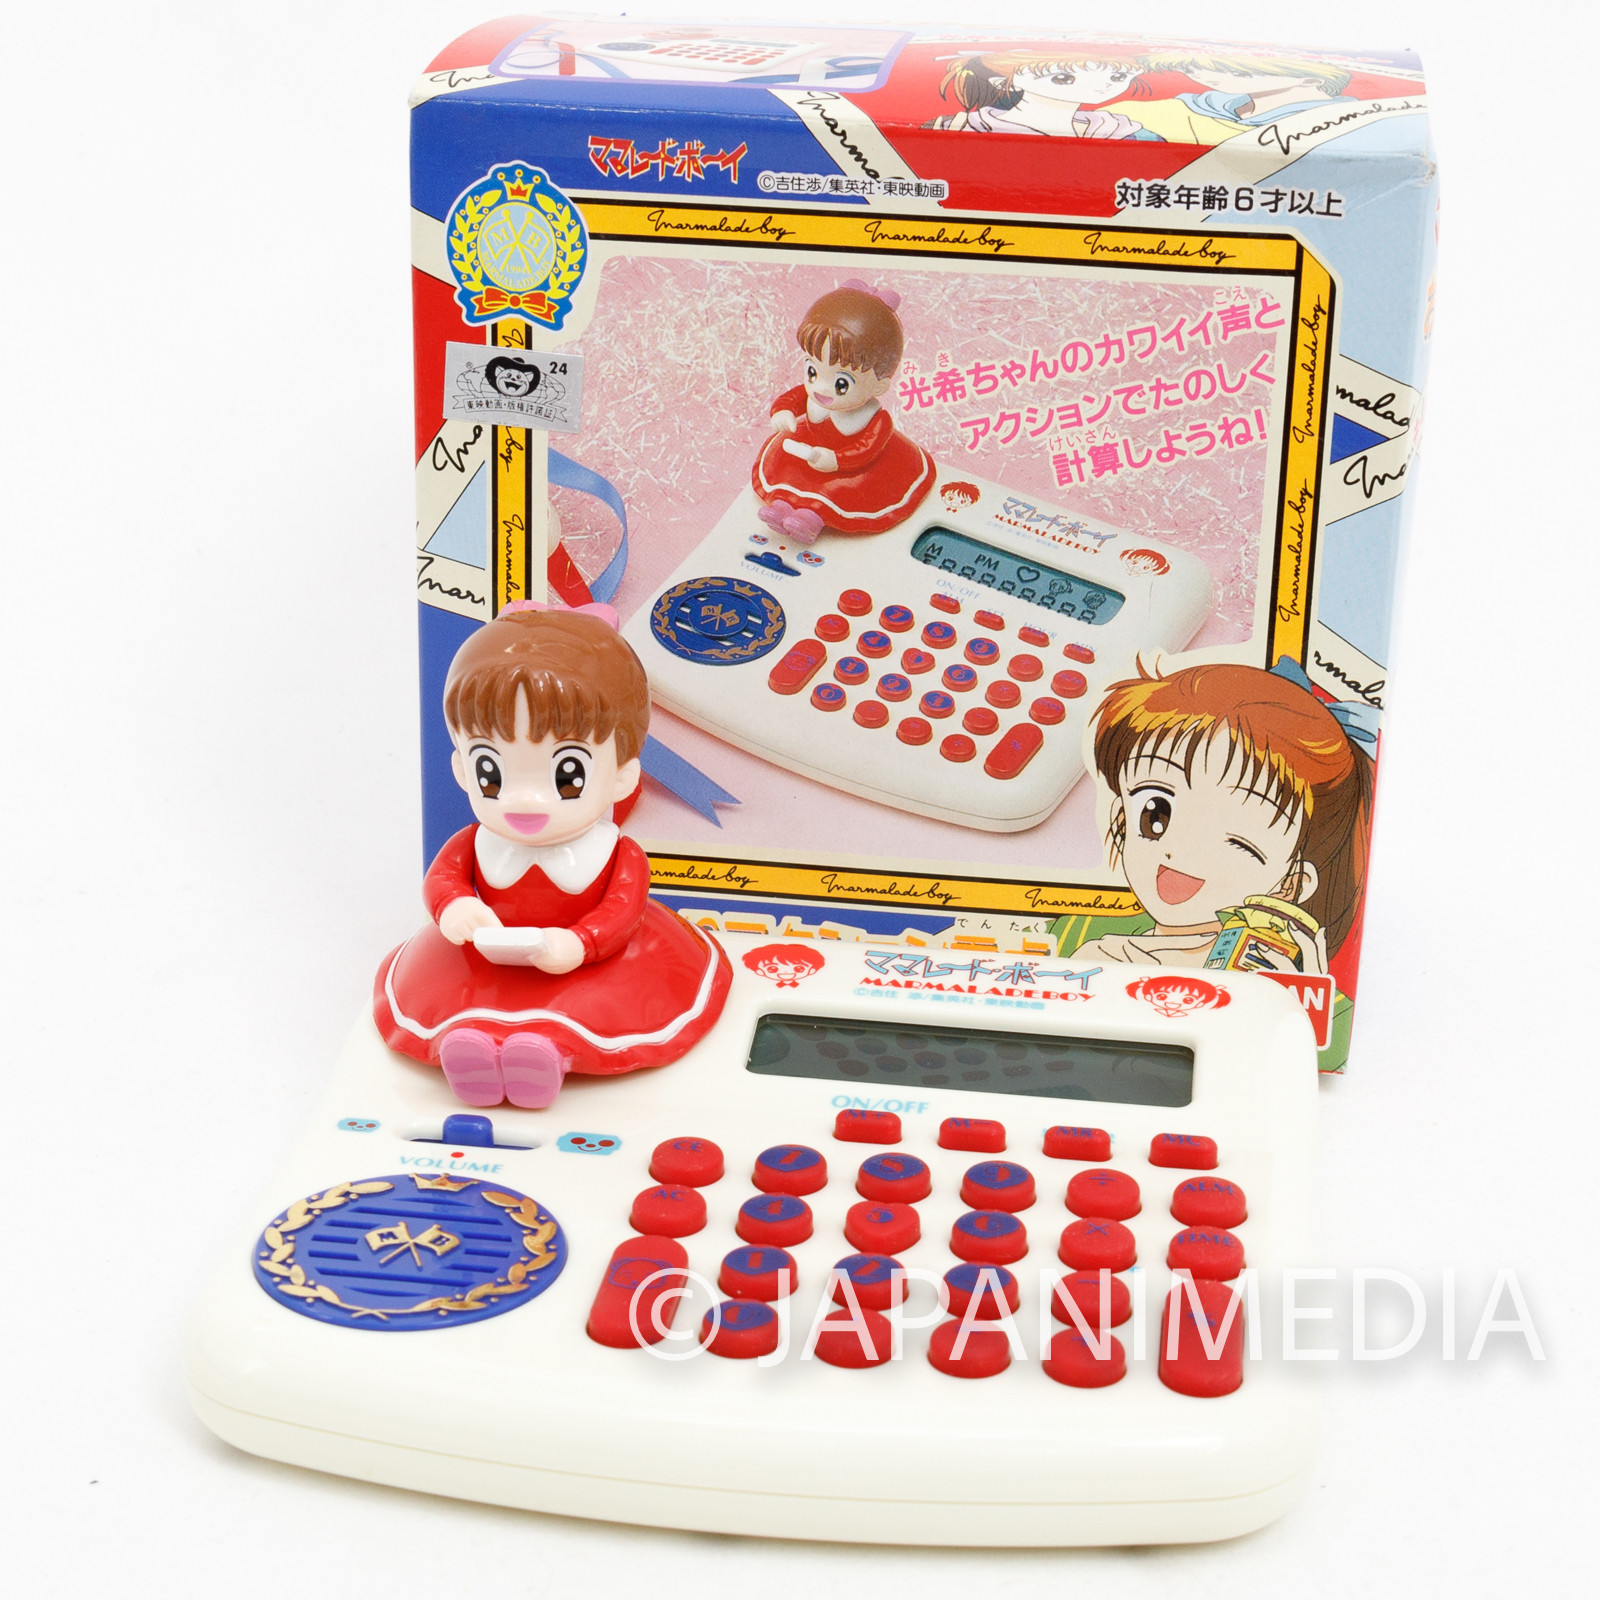 Retro RARE! Marmalade Boy Talking & Action Calculator BANDAI JAPAN ANIME